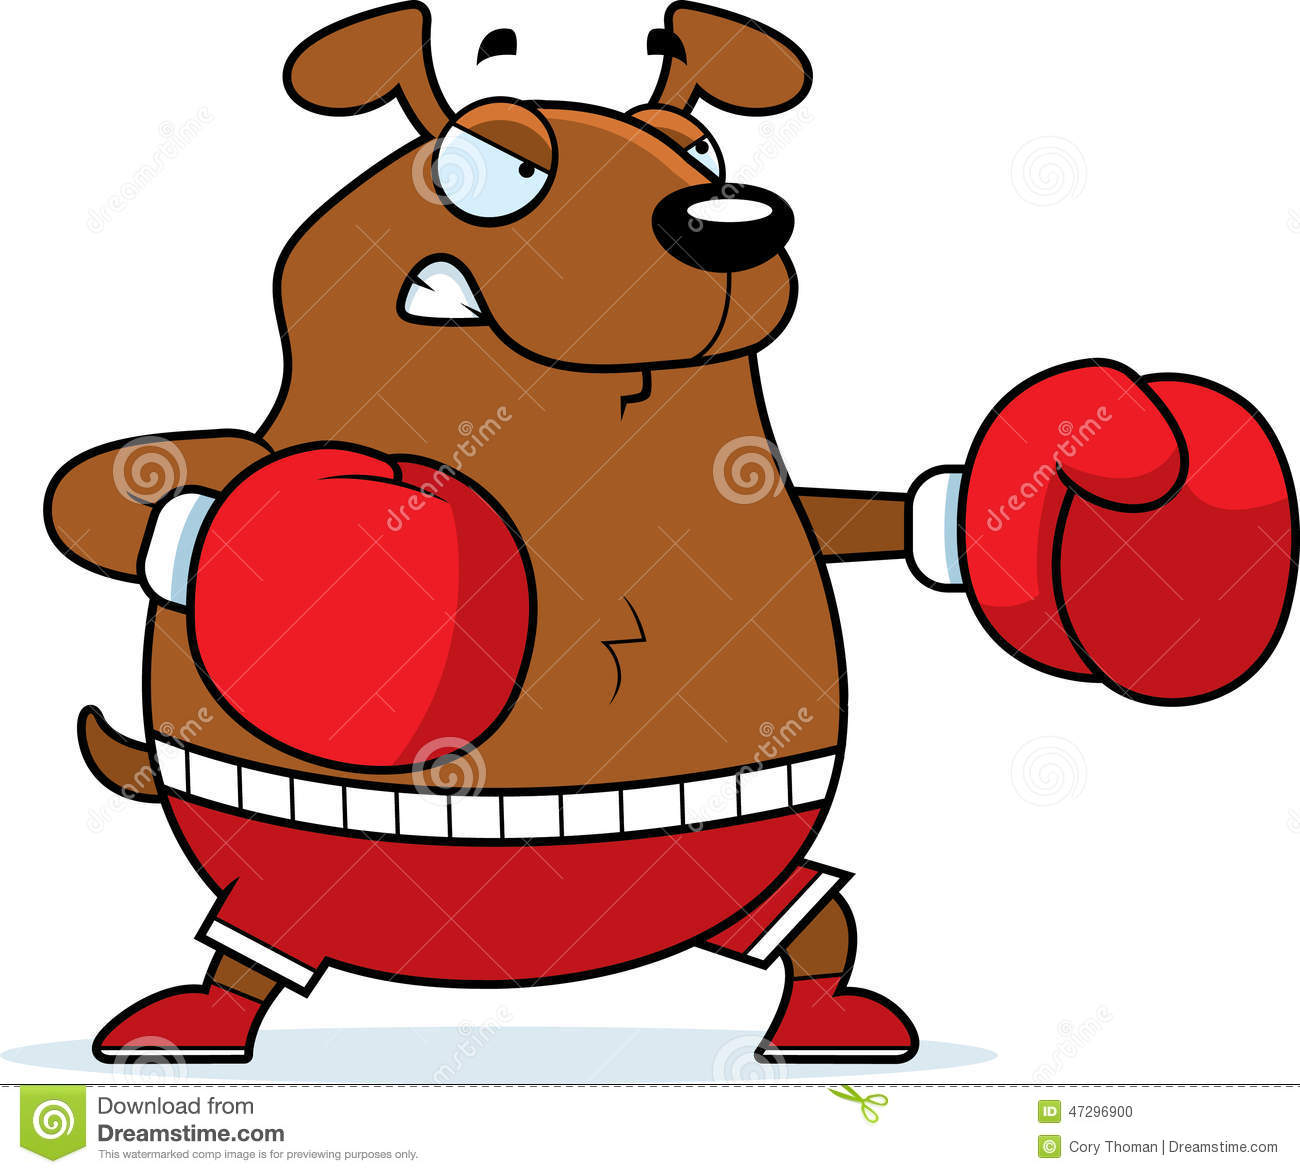 cartoon illustration of a dog punching with boxing gloves.